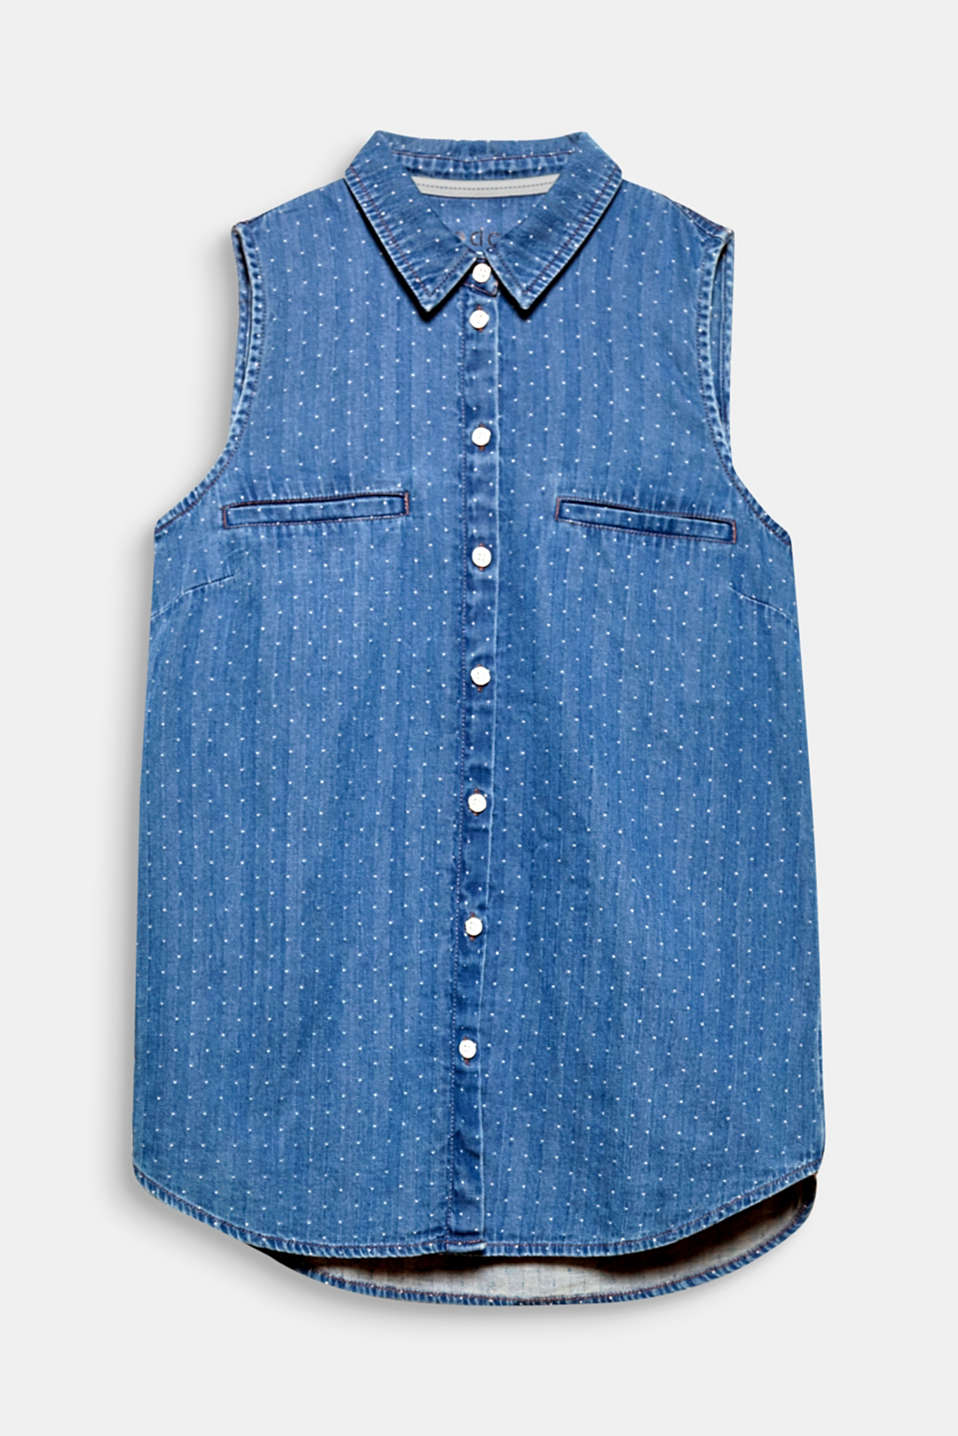 This sleeveless blouse is the perfect springtime companion in soft denim with a fine woven polka dot pattern.